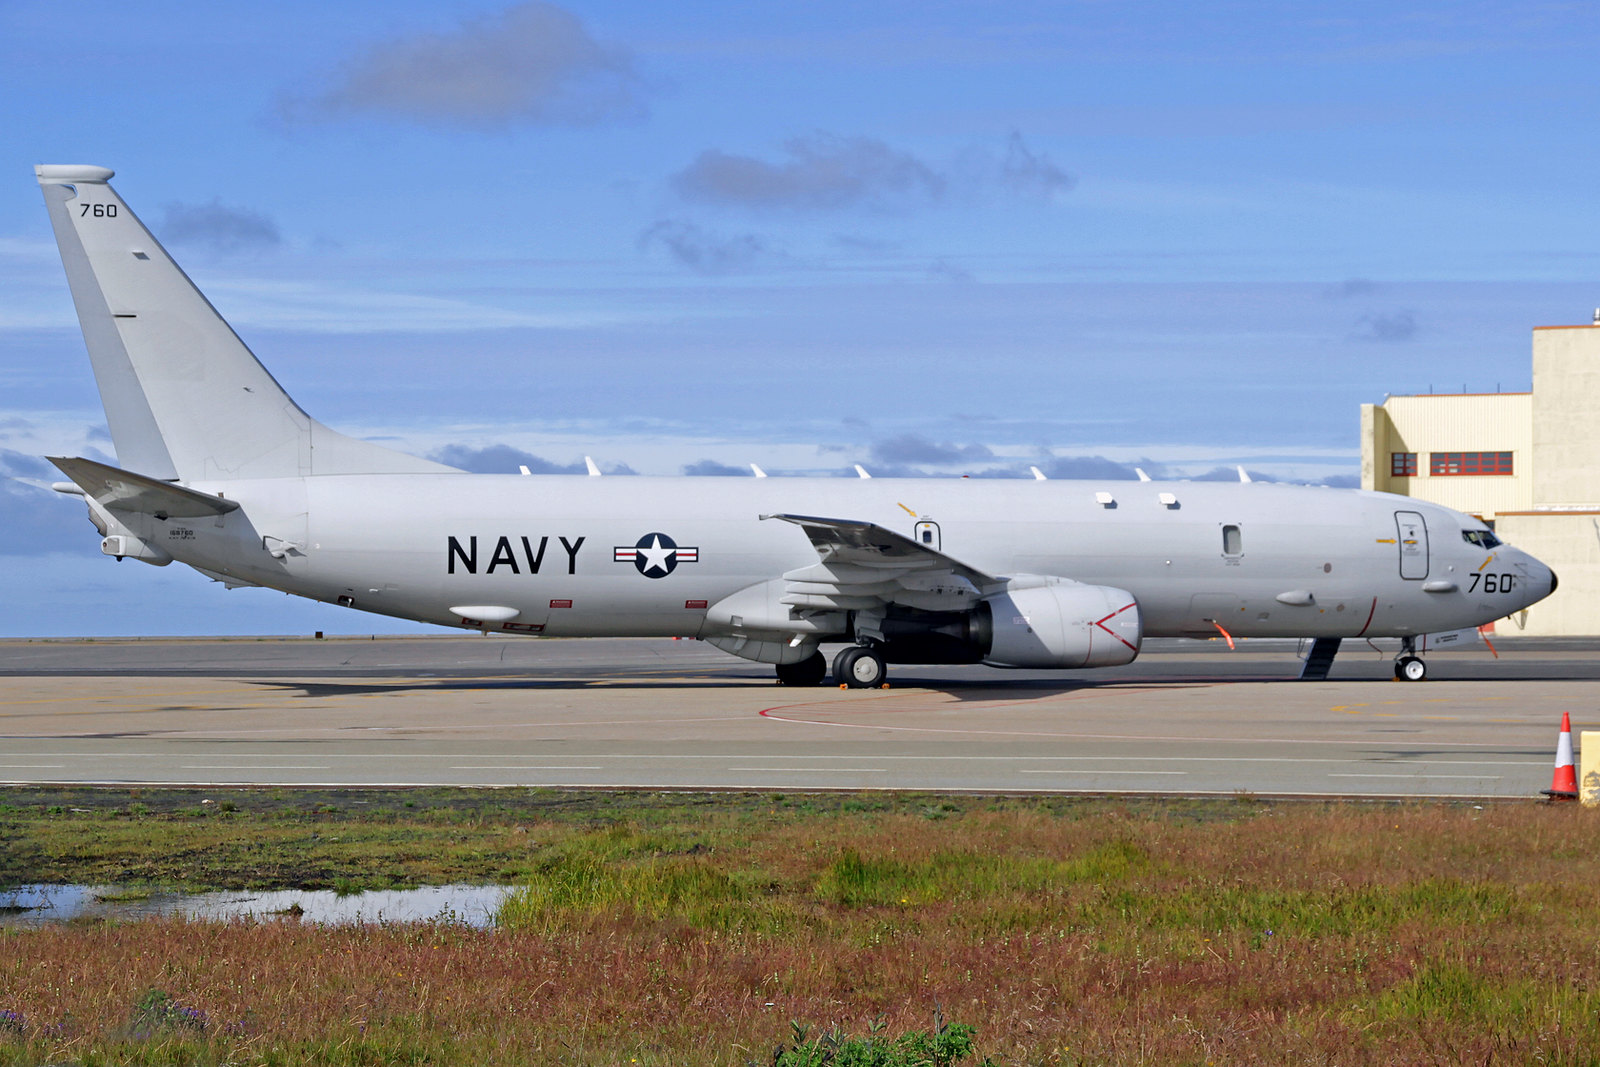 United States Navy Boeing P-8A Poseidon 168760, KEF, 12. August 2020